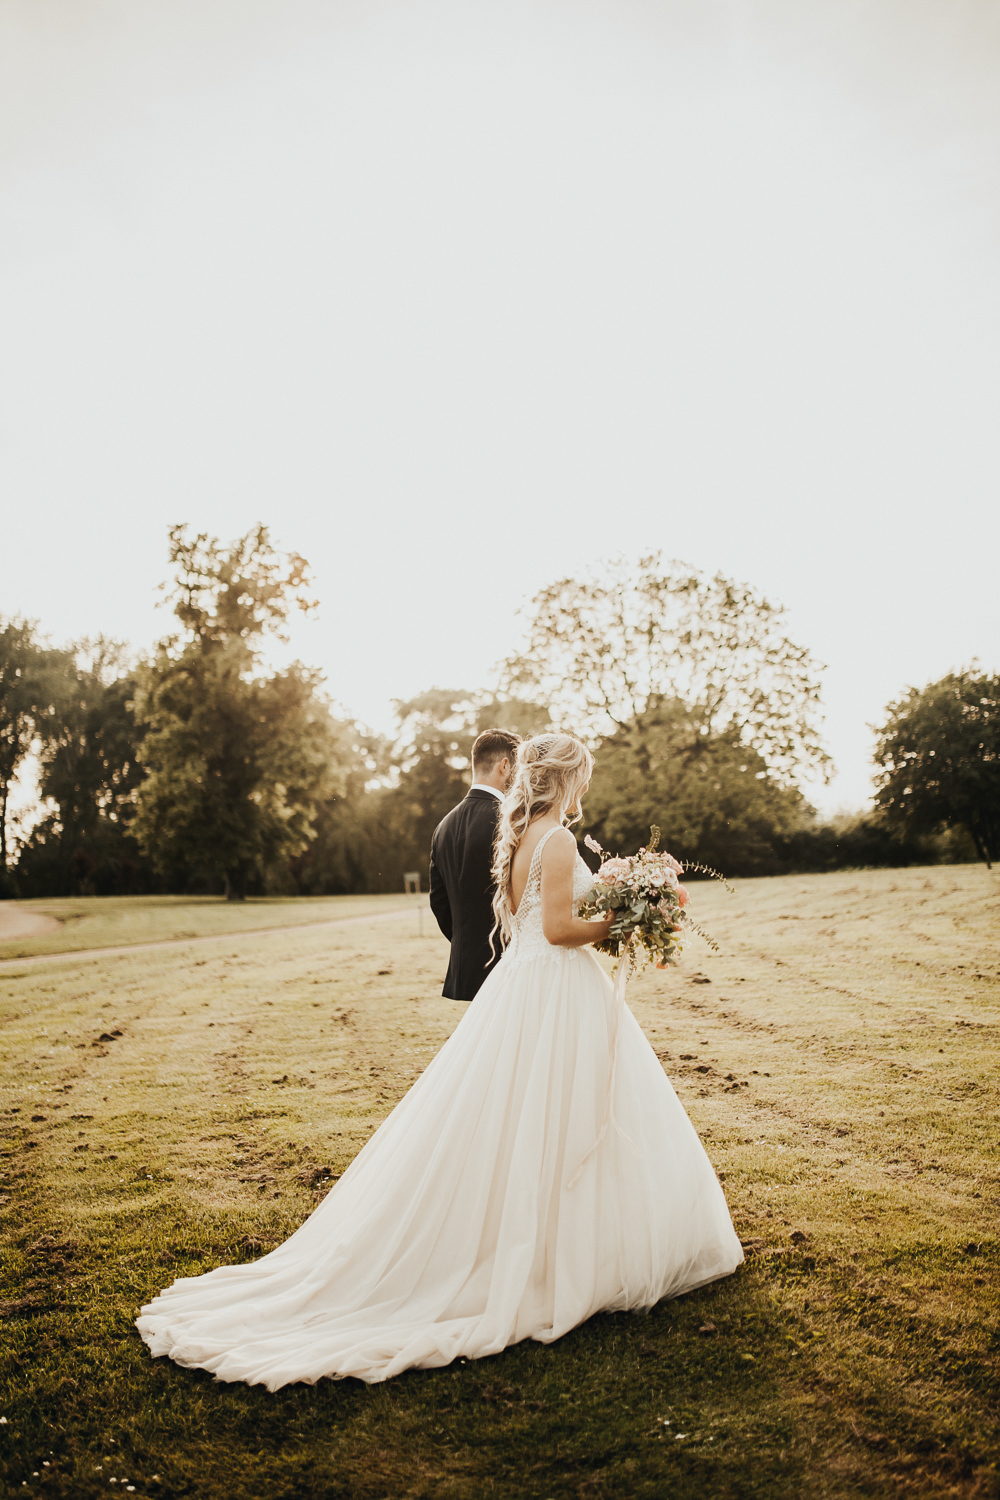 Dress Gown Bride Bridal Maggie Sottero Tulle Embroidered Embellished Train Stubton Hall Wedding Darina Stoda Photography